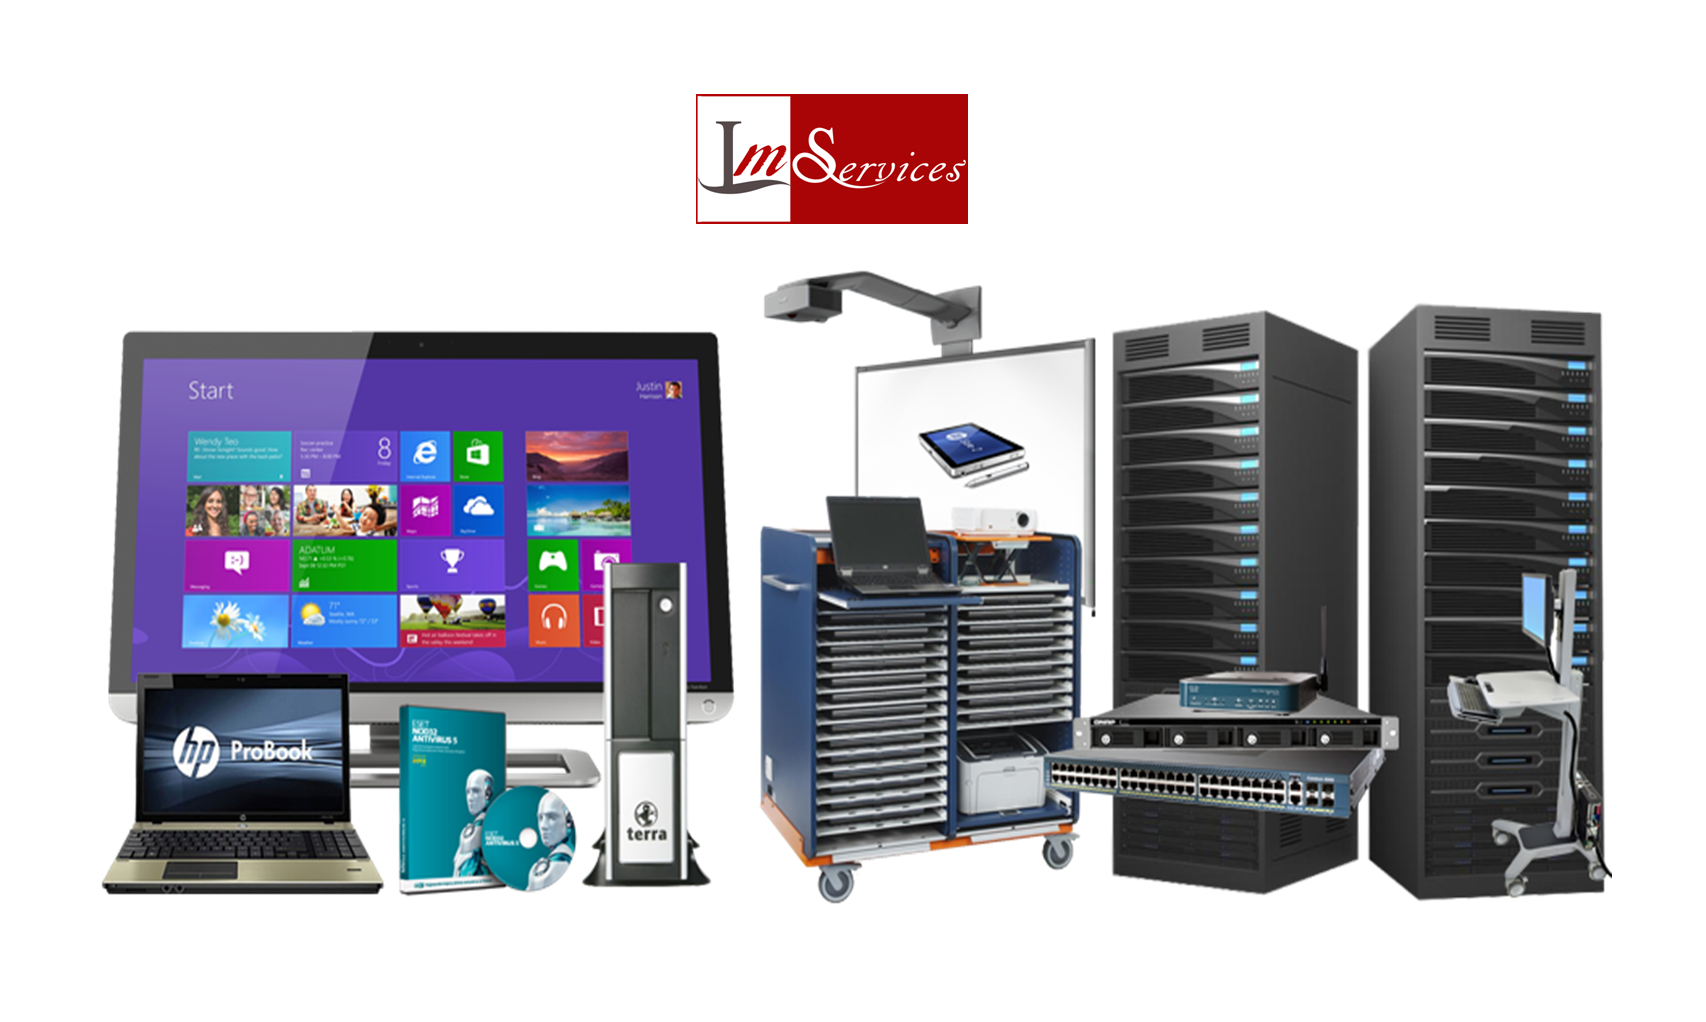 SOLUTION INFORMATIQUE LM SERVICES ENTRETIEN BATIMENTS SOLUTION INFORMATIQUE, MAINTENANCE RESEAUX ET ENTRETIEN BATIMENTS SOLUTION INFORMATIQUE